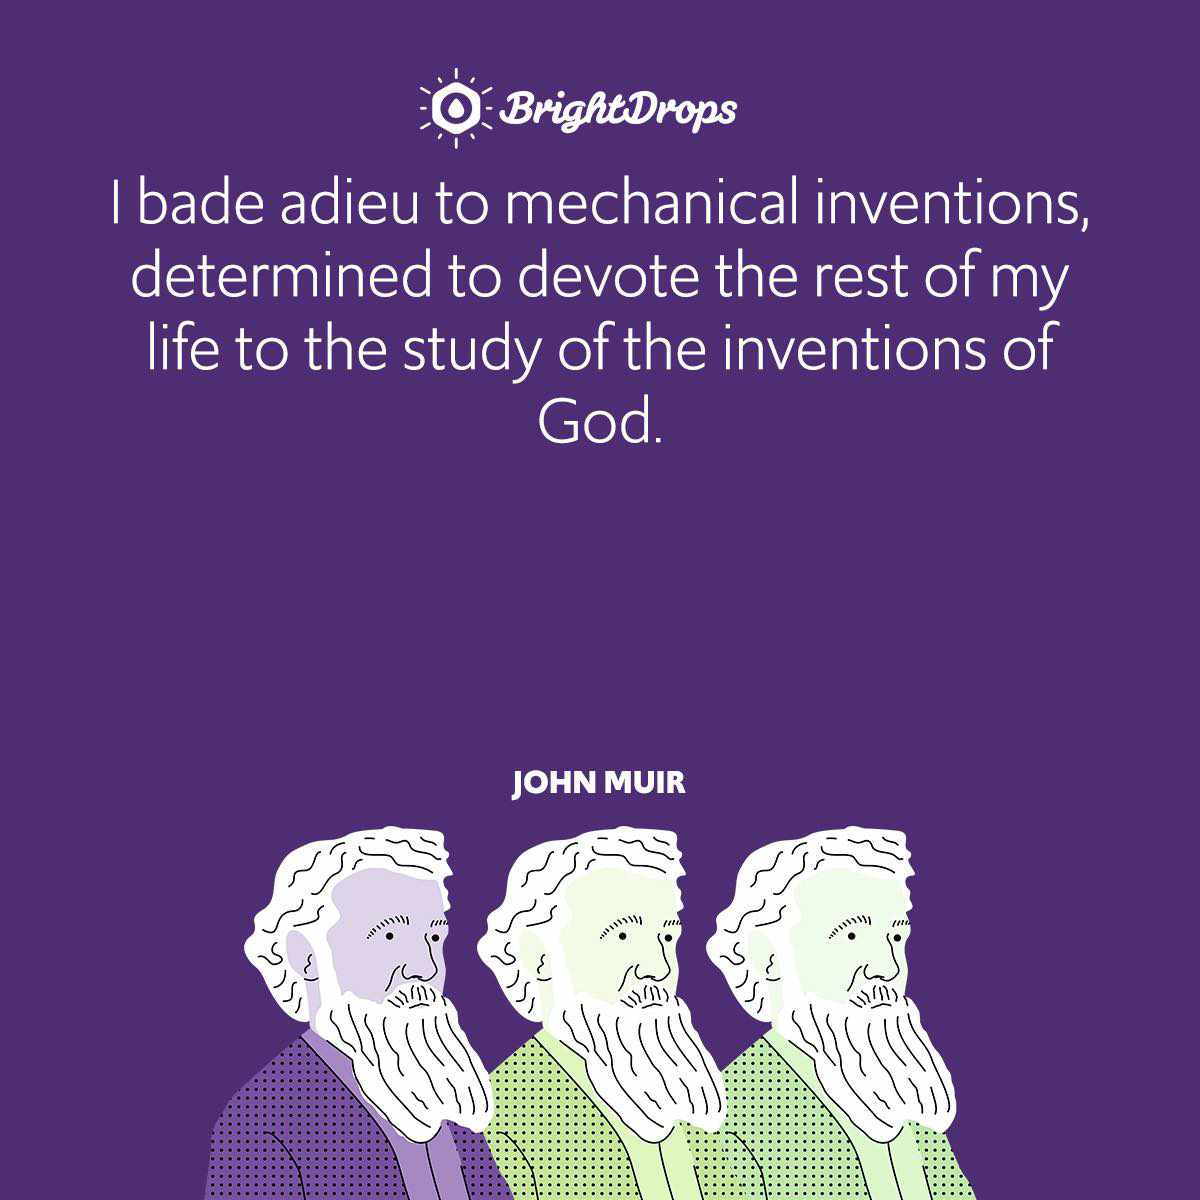 I bade adieu to mechanical inventions, determined to devote the rest of my life to the study of the inventions of God.